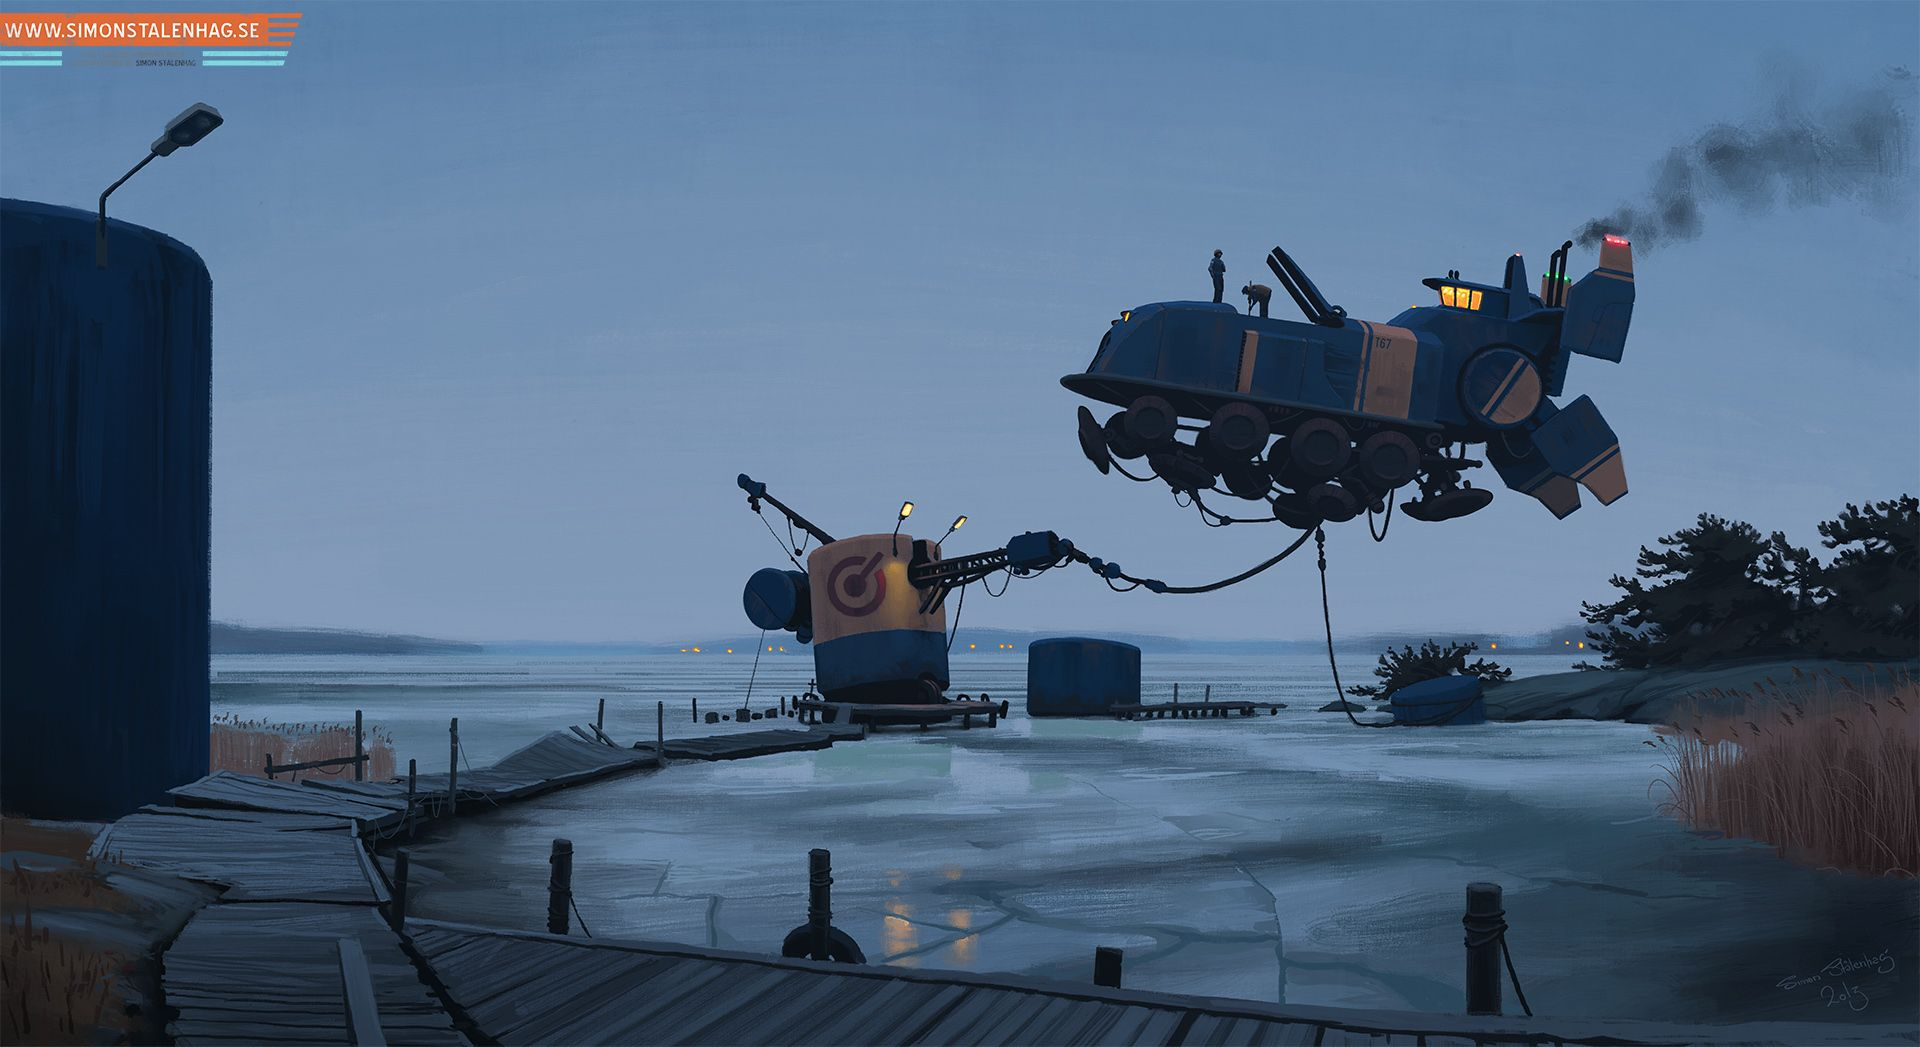 (2) Simon Stålenhag - Complete High Res - Album on Imgur